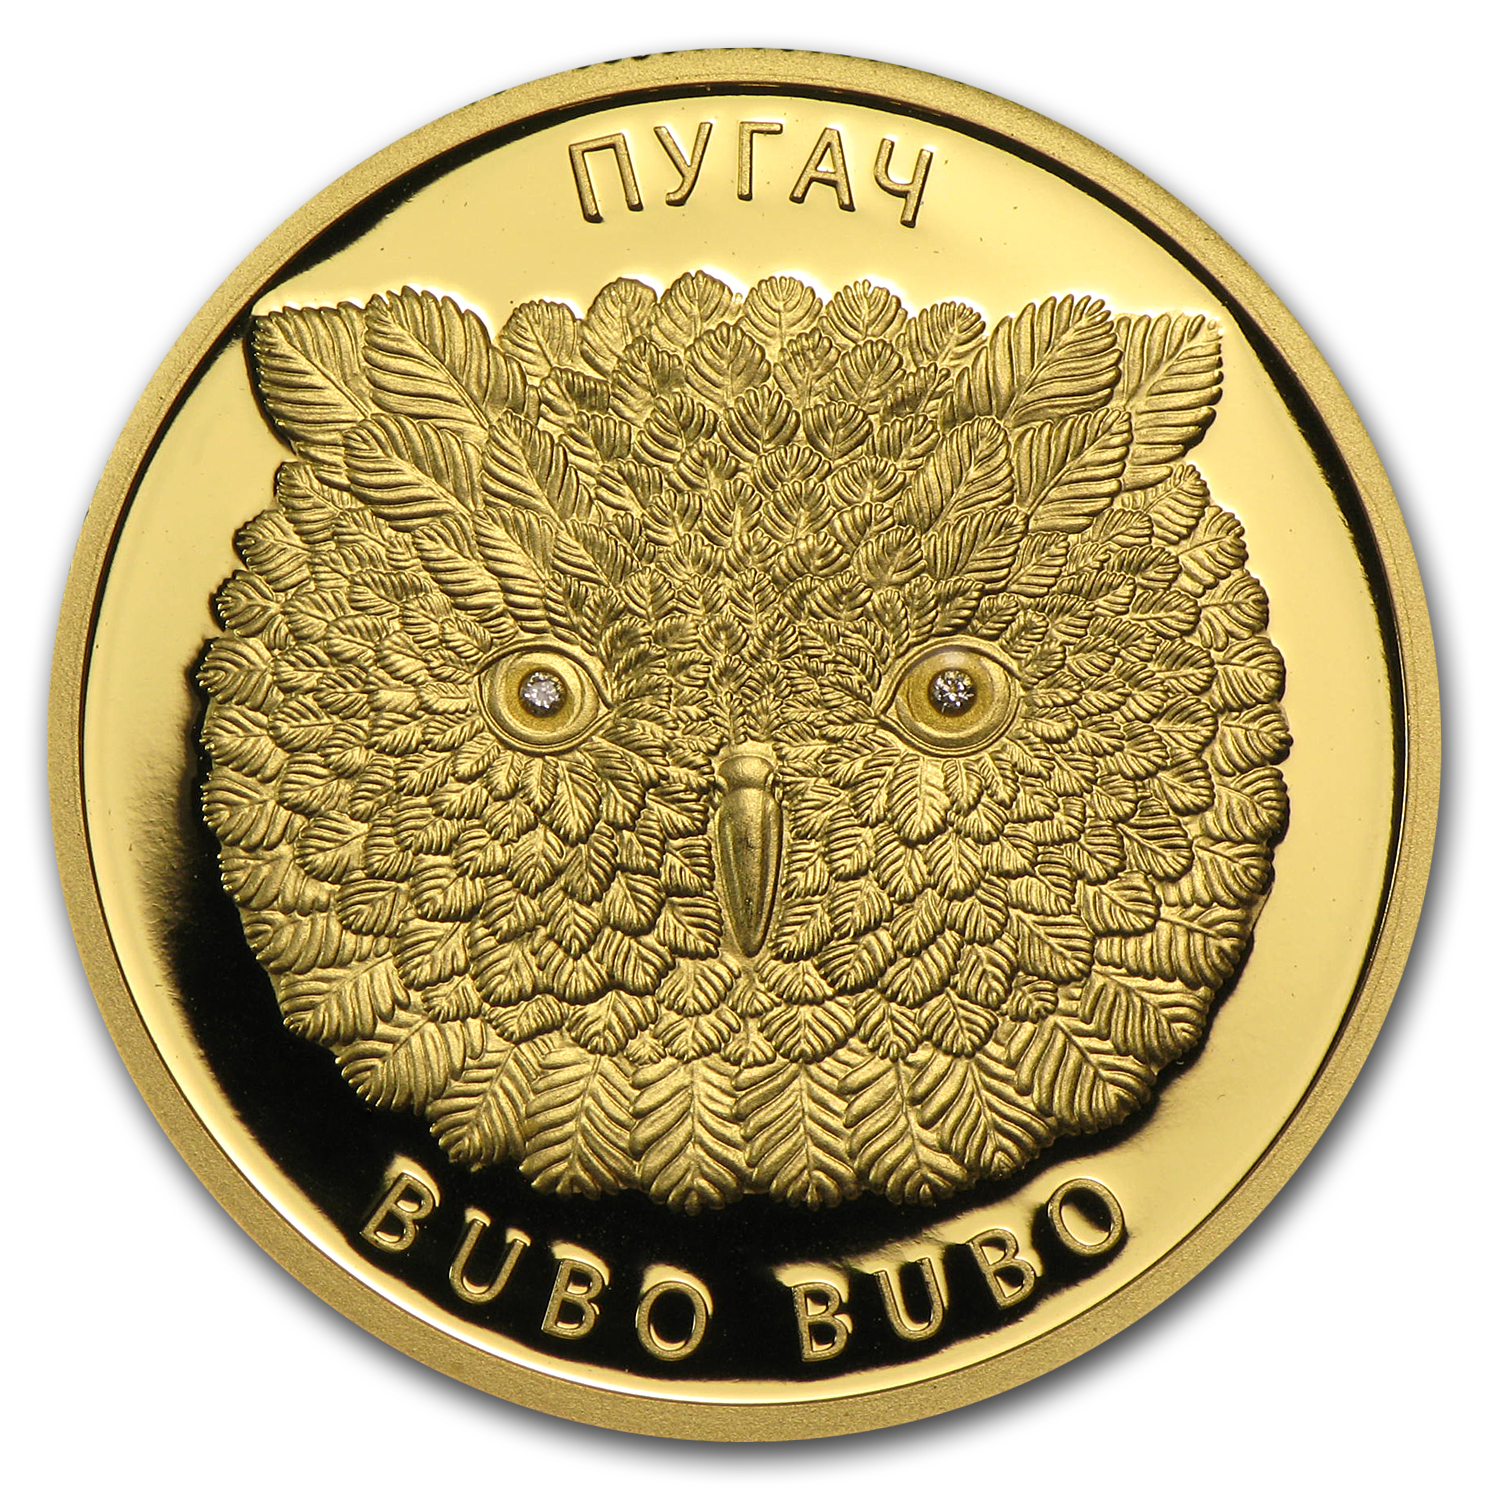 Belarus 2010 Proof Gold Eagle Owl - Bubo Bubo